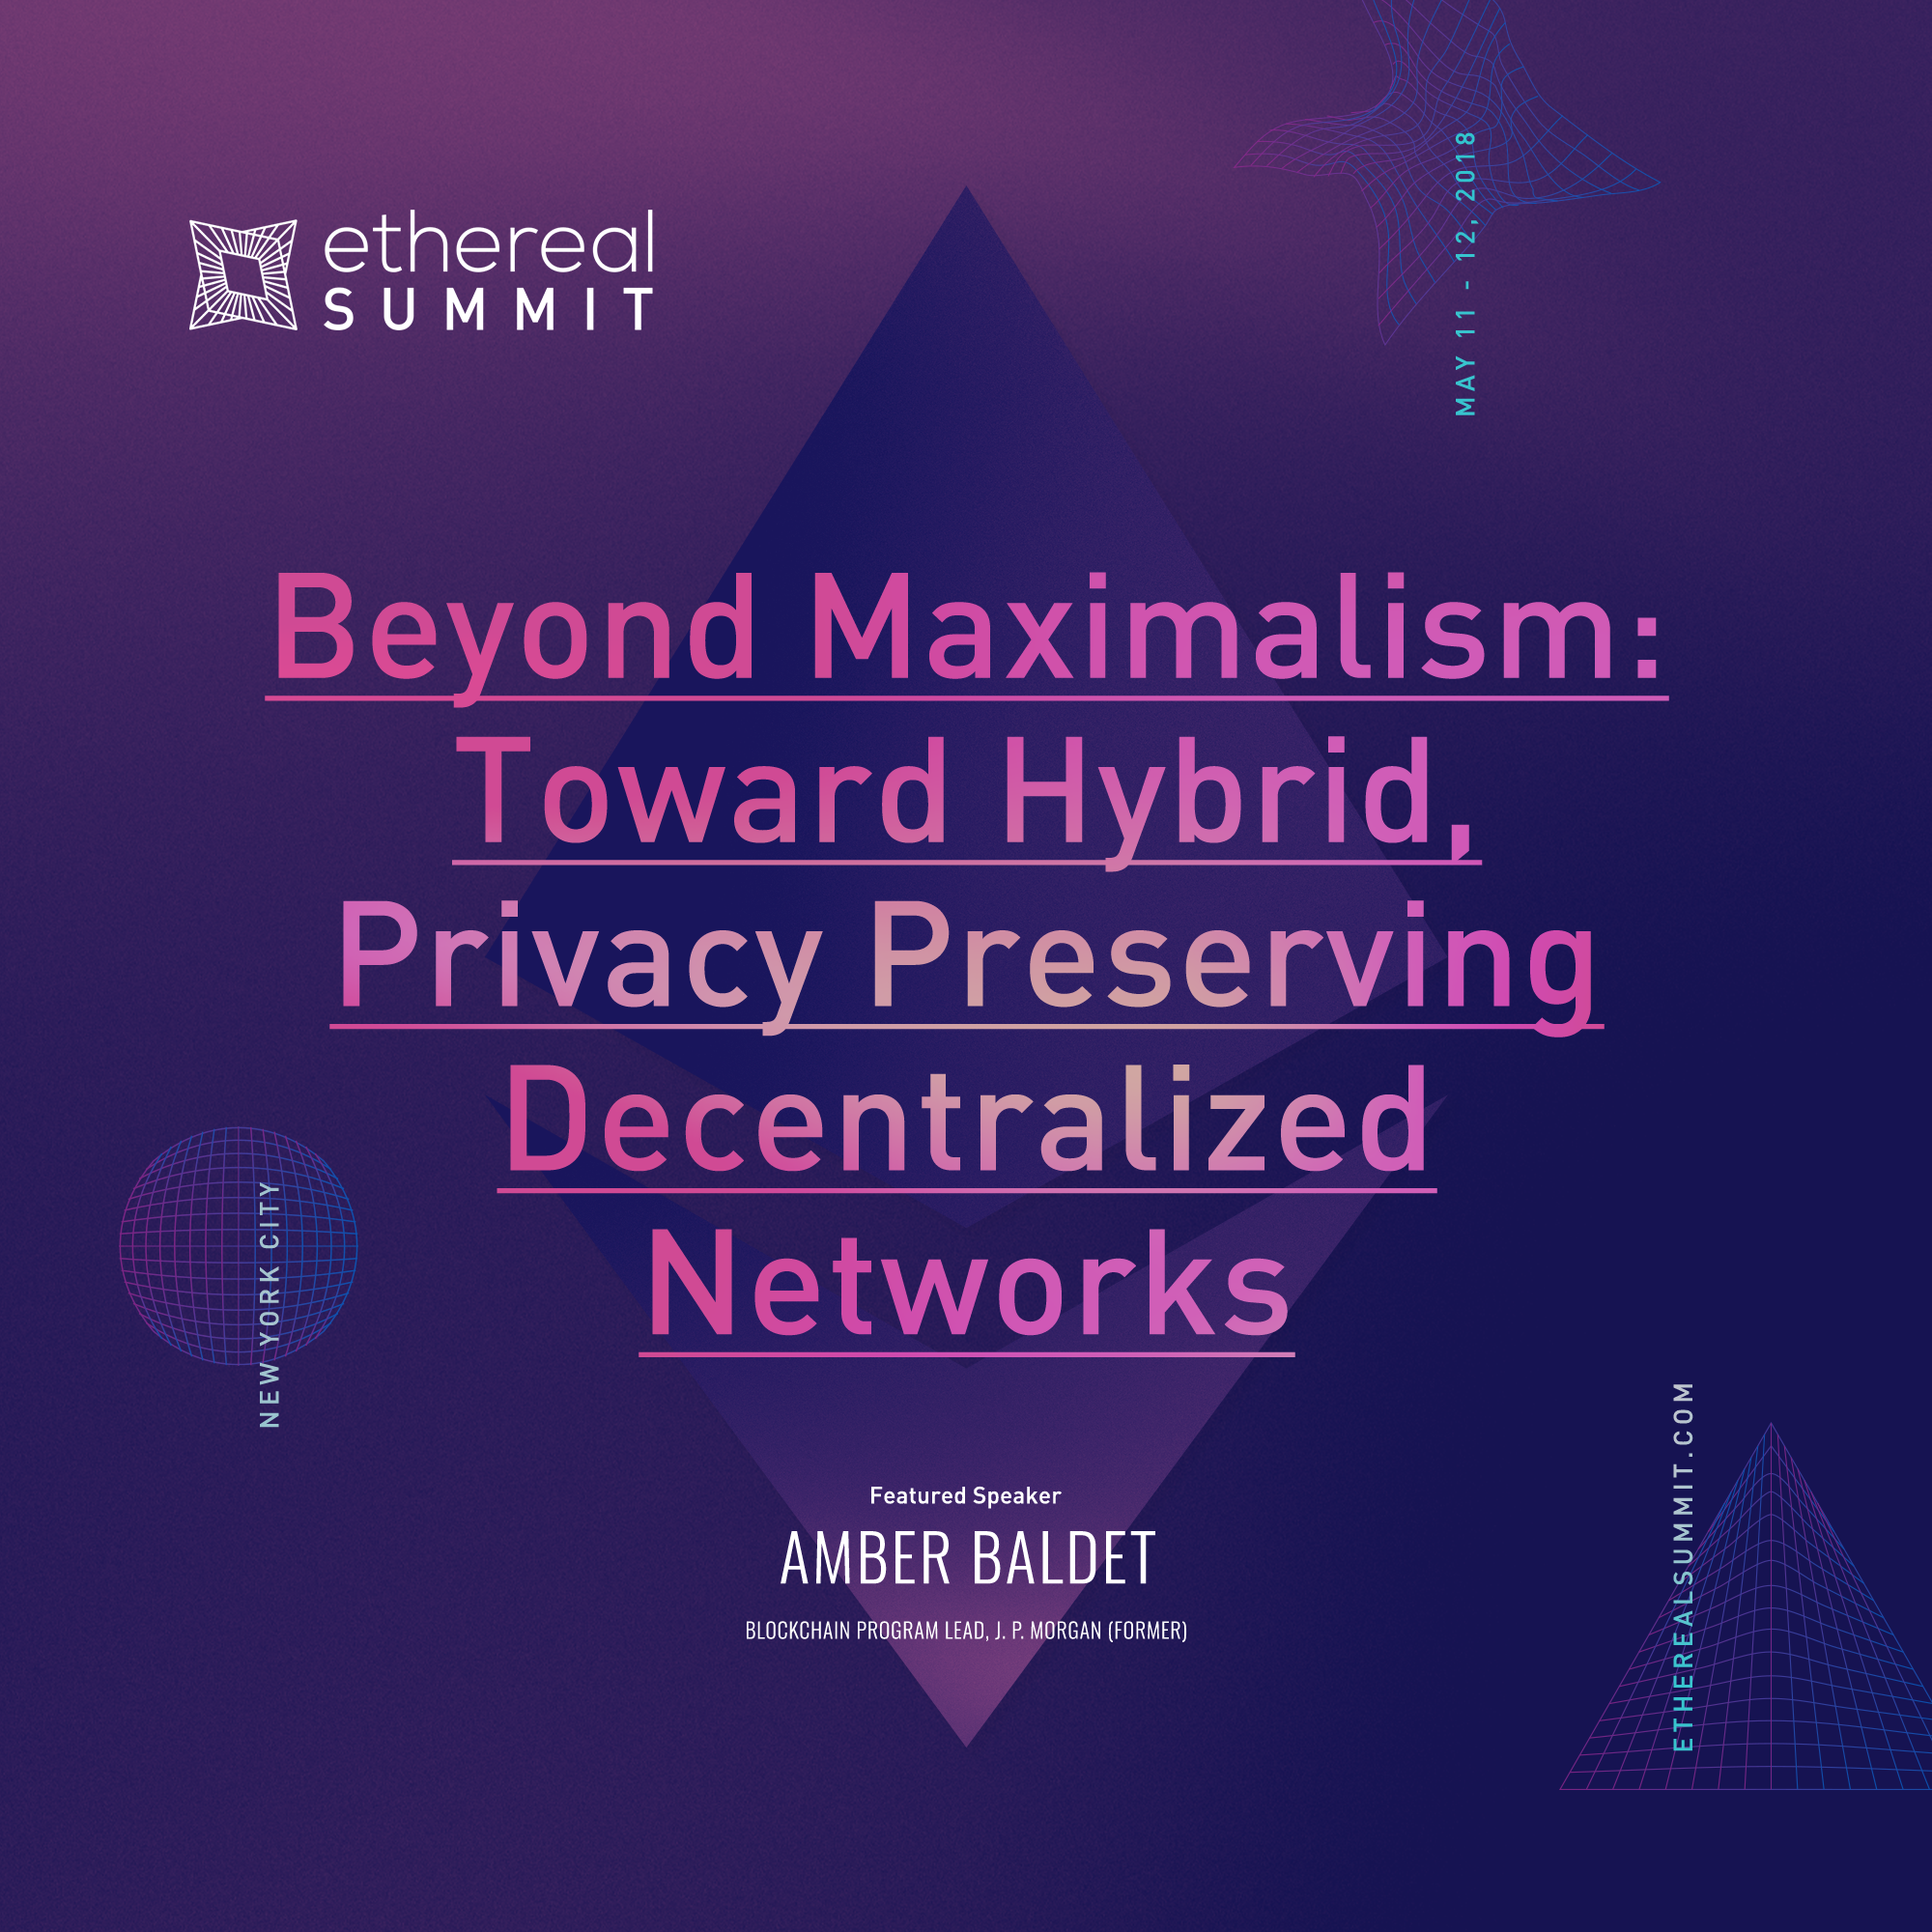 Beyond Maximalism: Toward Hybrid, Privacy Preserving Decentralized Networks